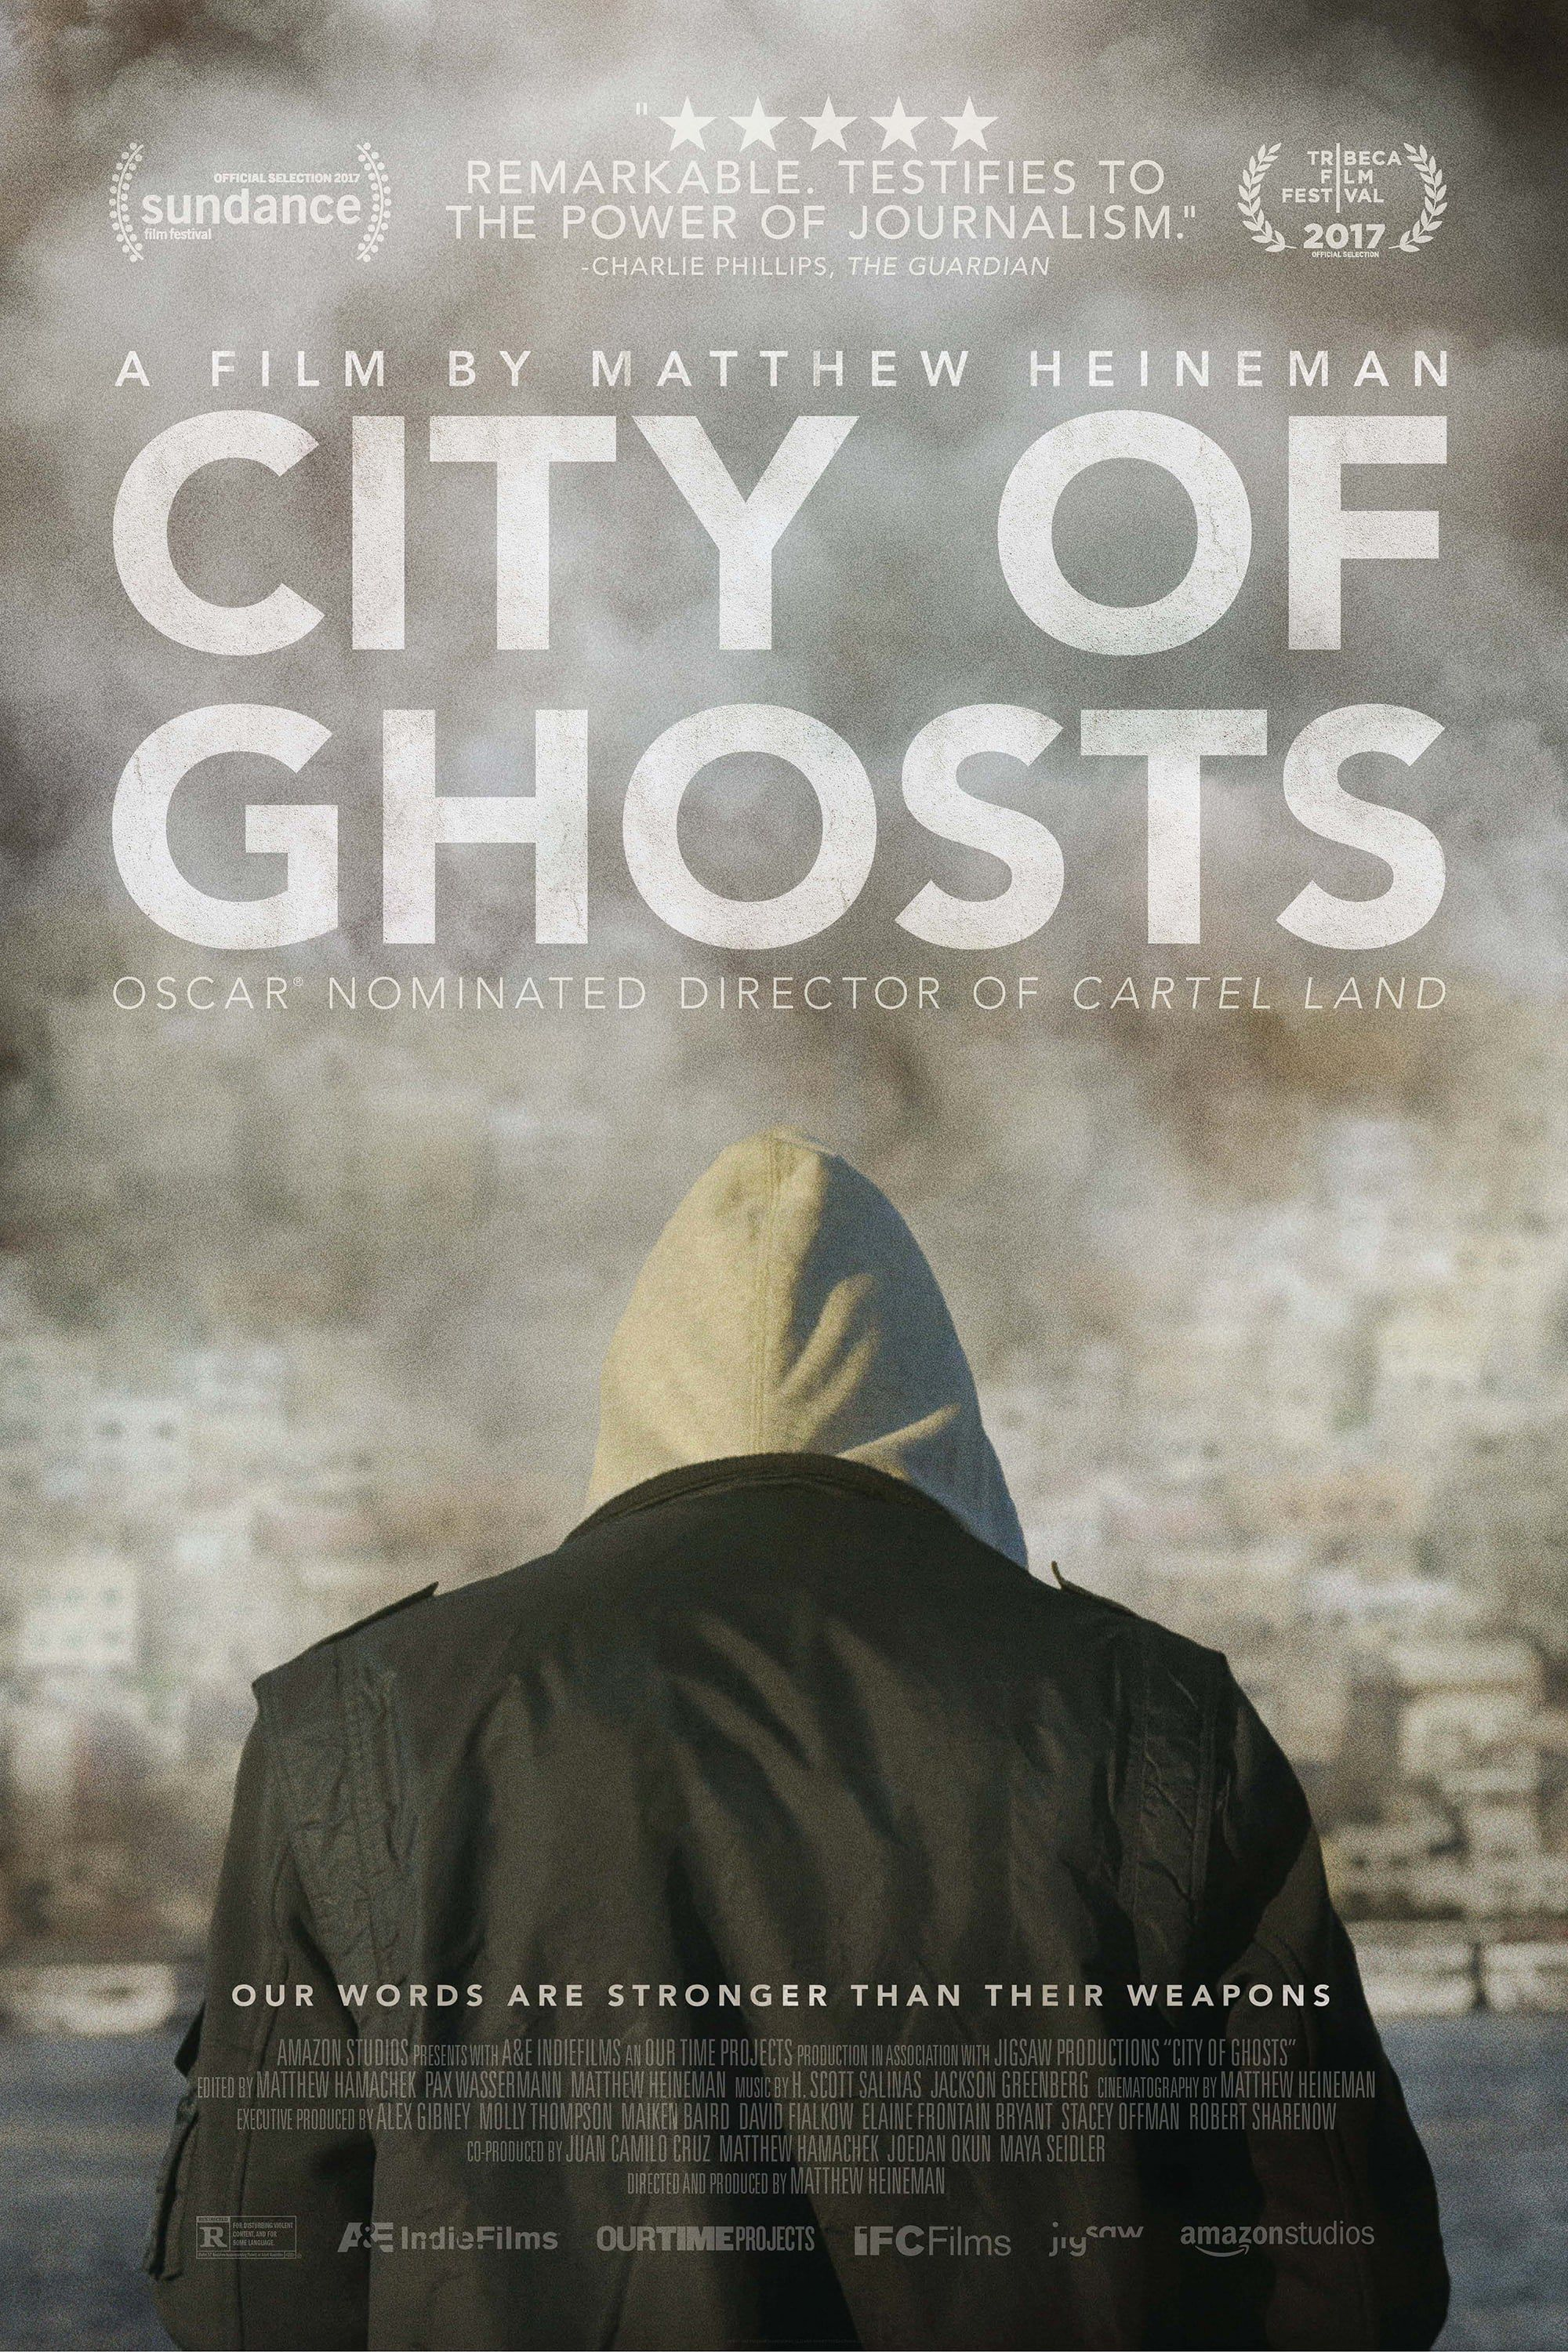 City of Ghosts - Documentaire (2017) streaming VF gratuit complet